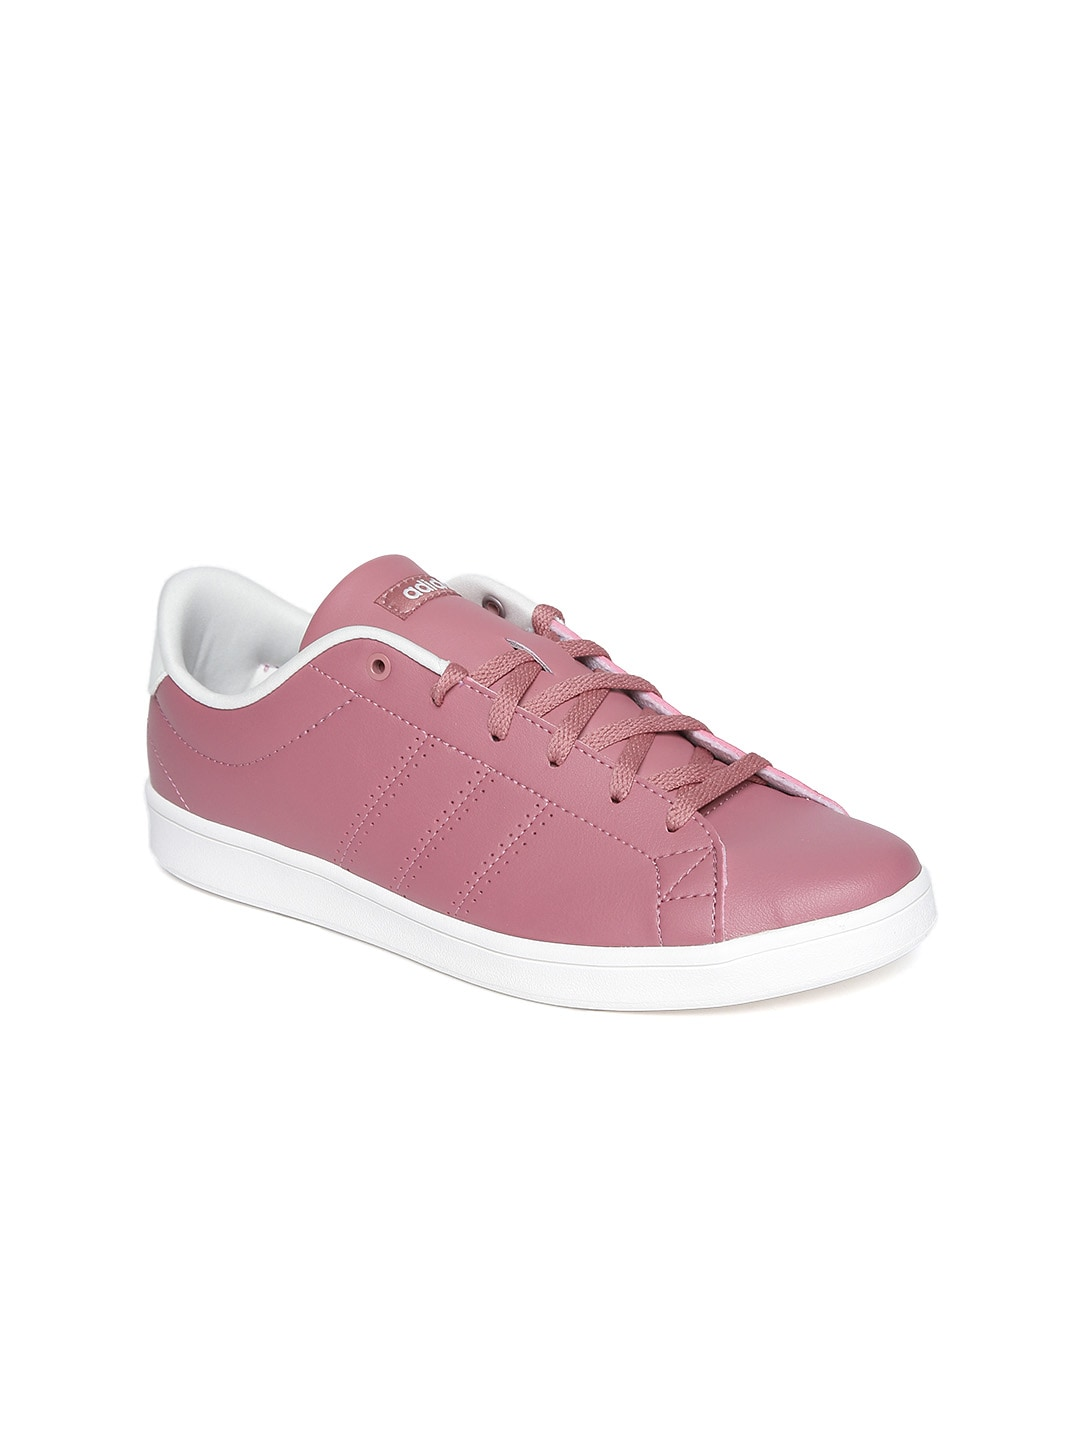 Adidas Pink Shoes - Buy Adidas Pink Shoes online in India 939af1147